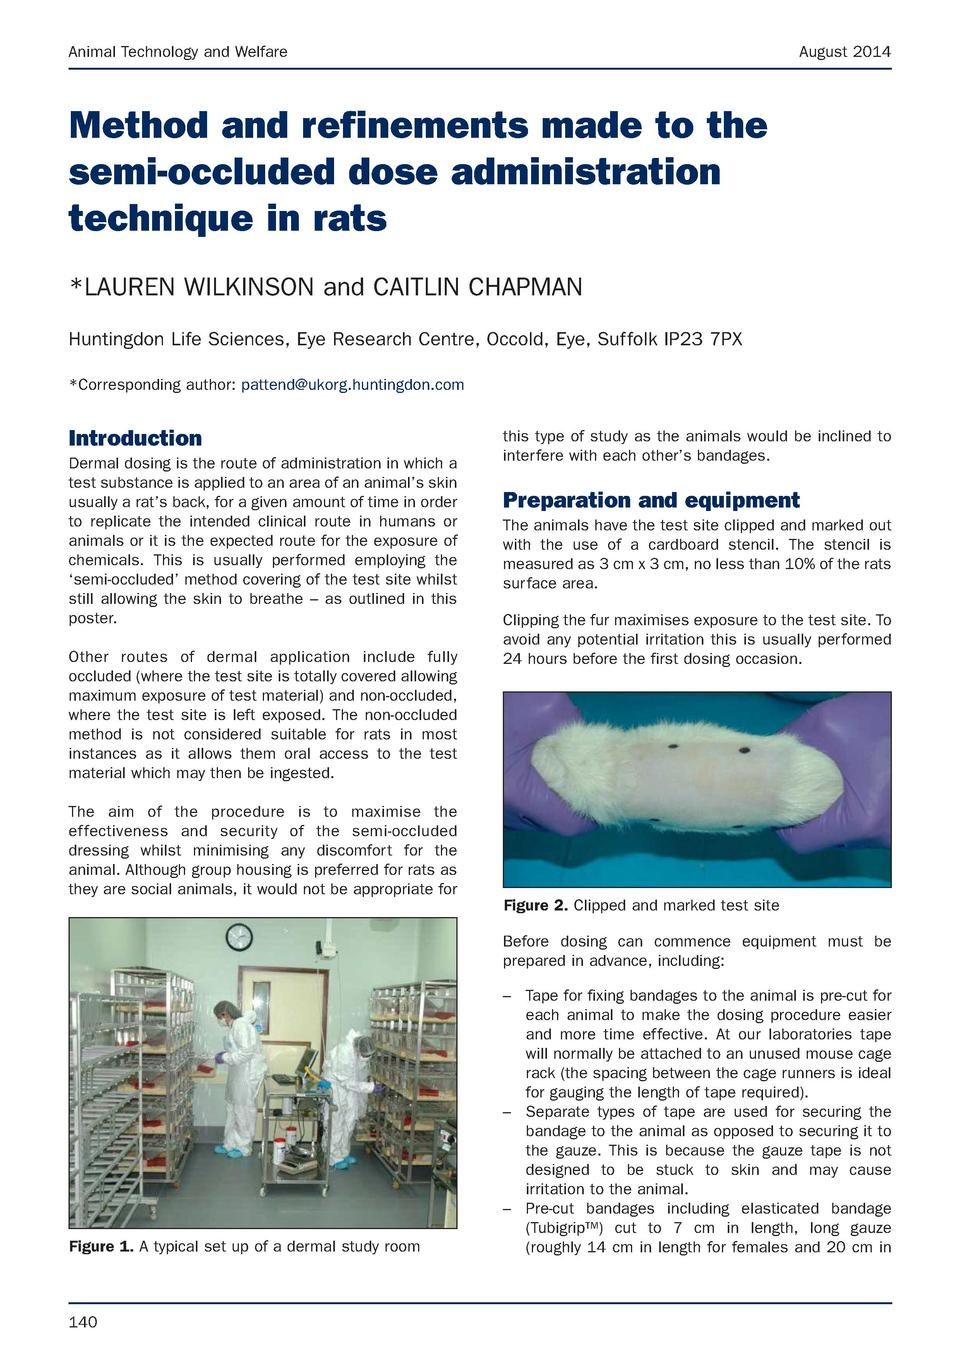 Animal Technology and Welfare  August 2014  Method and refinements made to the semi-occluded dose administration technique...